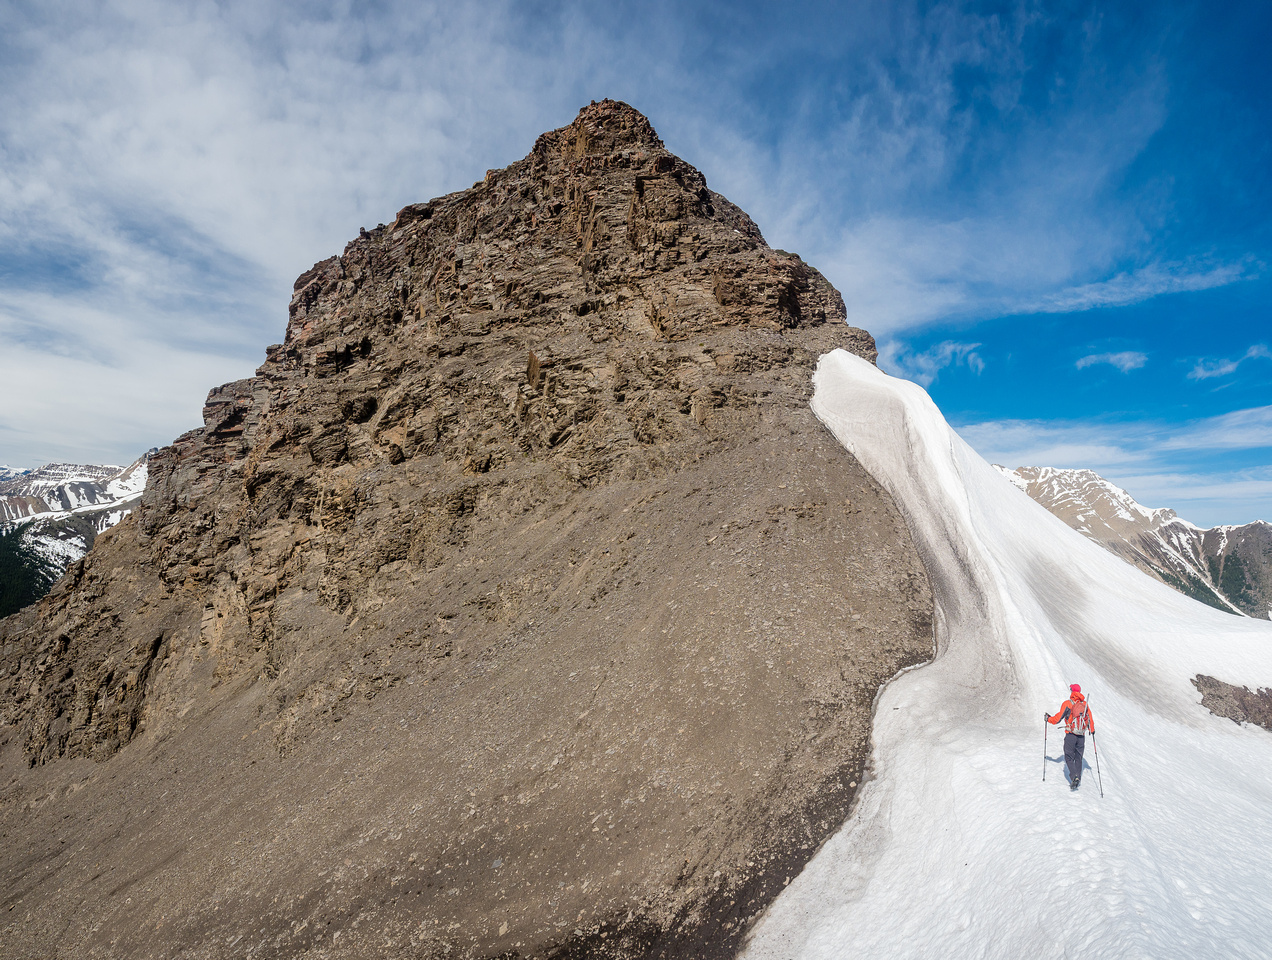 Mike traverses from the col between the two summits towards the summit of Ernest Ross.